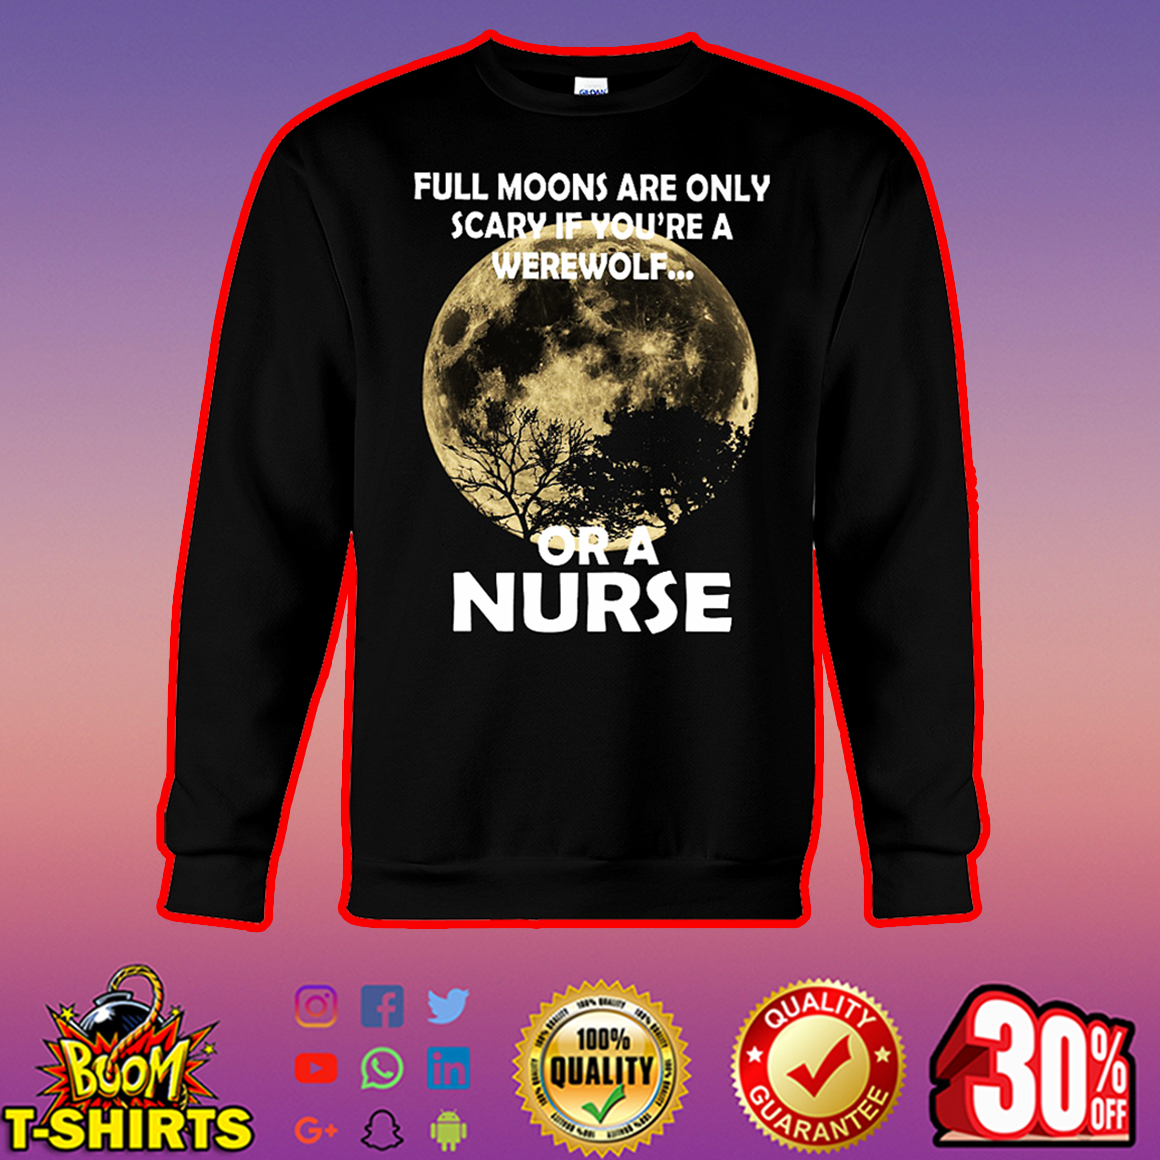 Full moons are only scary if you're a werewolf or a nurse sweatshirt